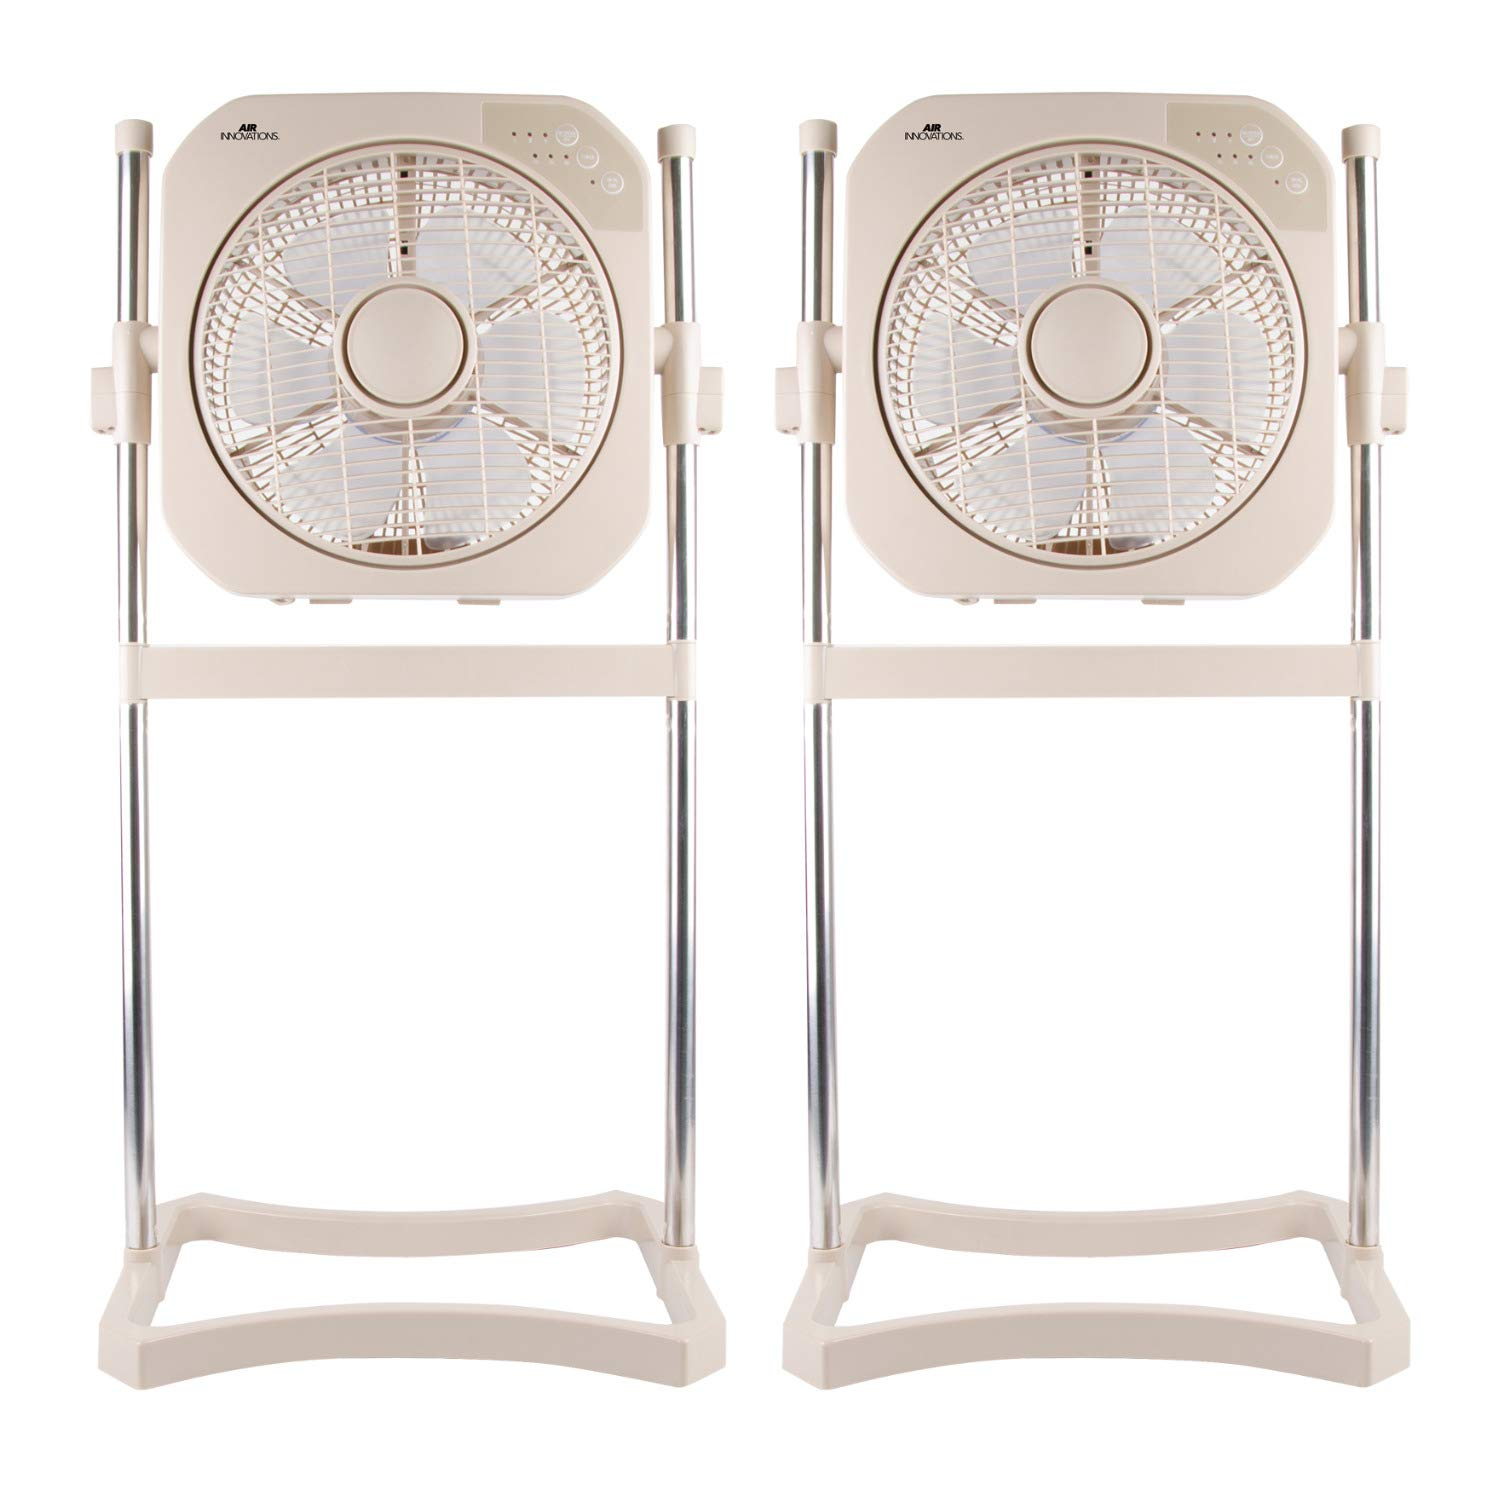 Air Innovations FAN08 12'' Swirl Cool Box Fan with Cord Wrap (Beige) - 2 Pack by Air Innovations